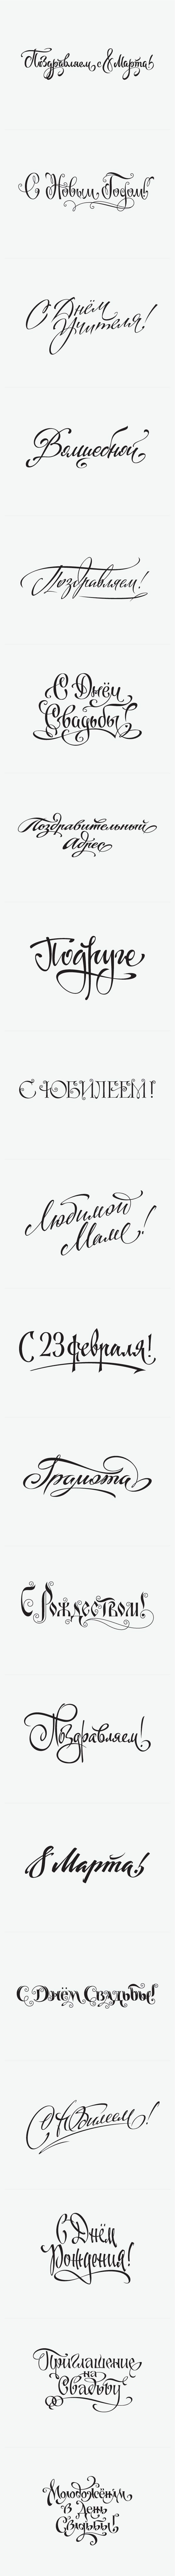 Lettering for postcard compilation | Russian Creators